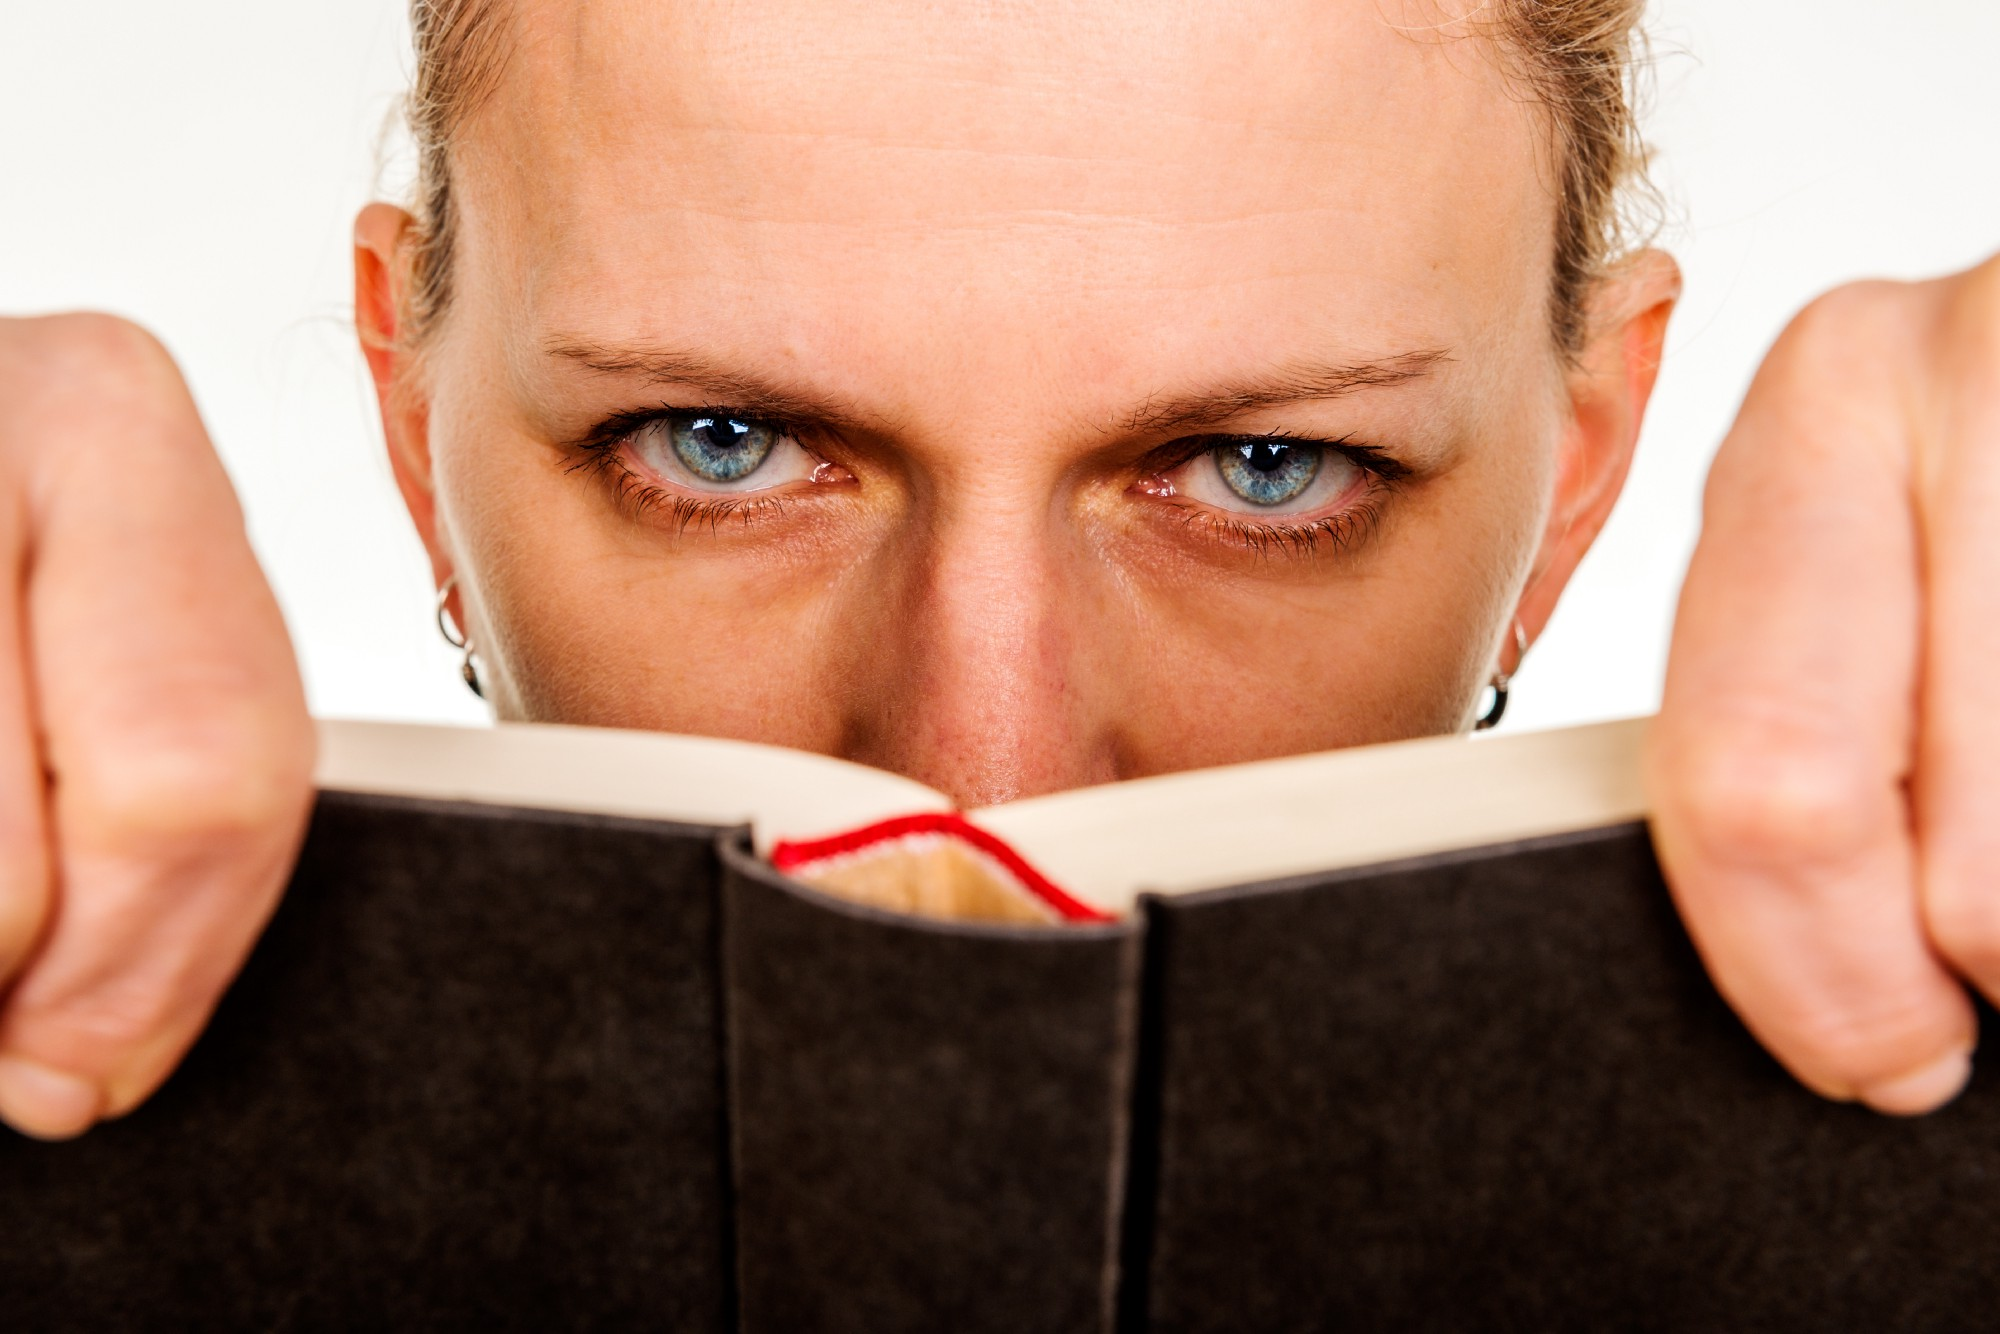 A woman looks directly at us over the top of a book she has been reading. It is clear she is unhappy with what she has just read.